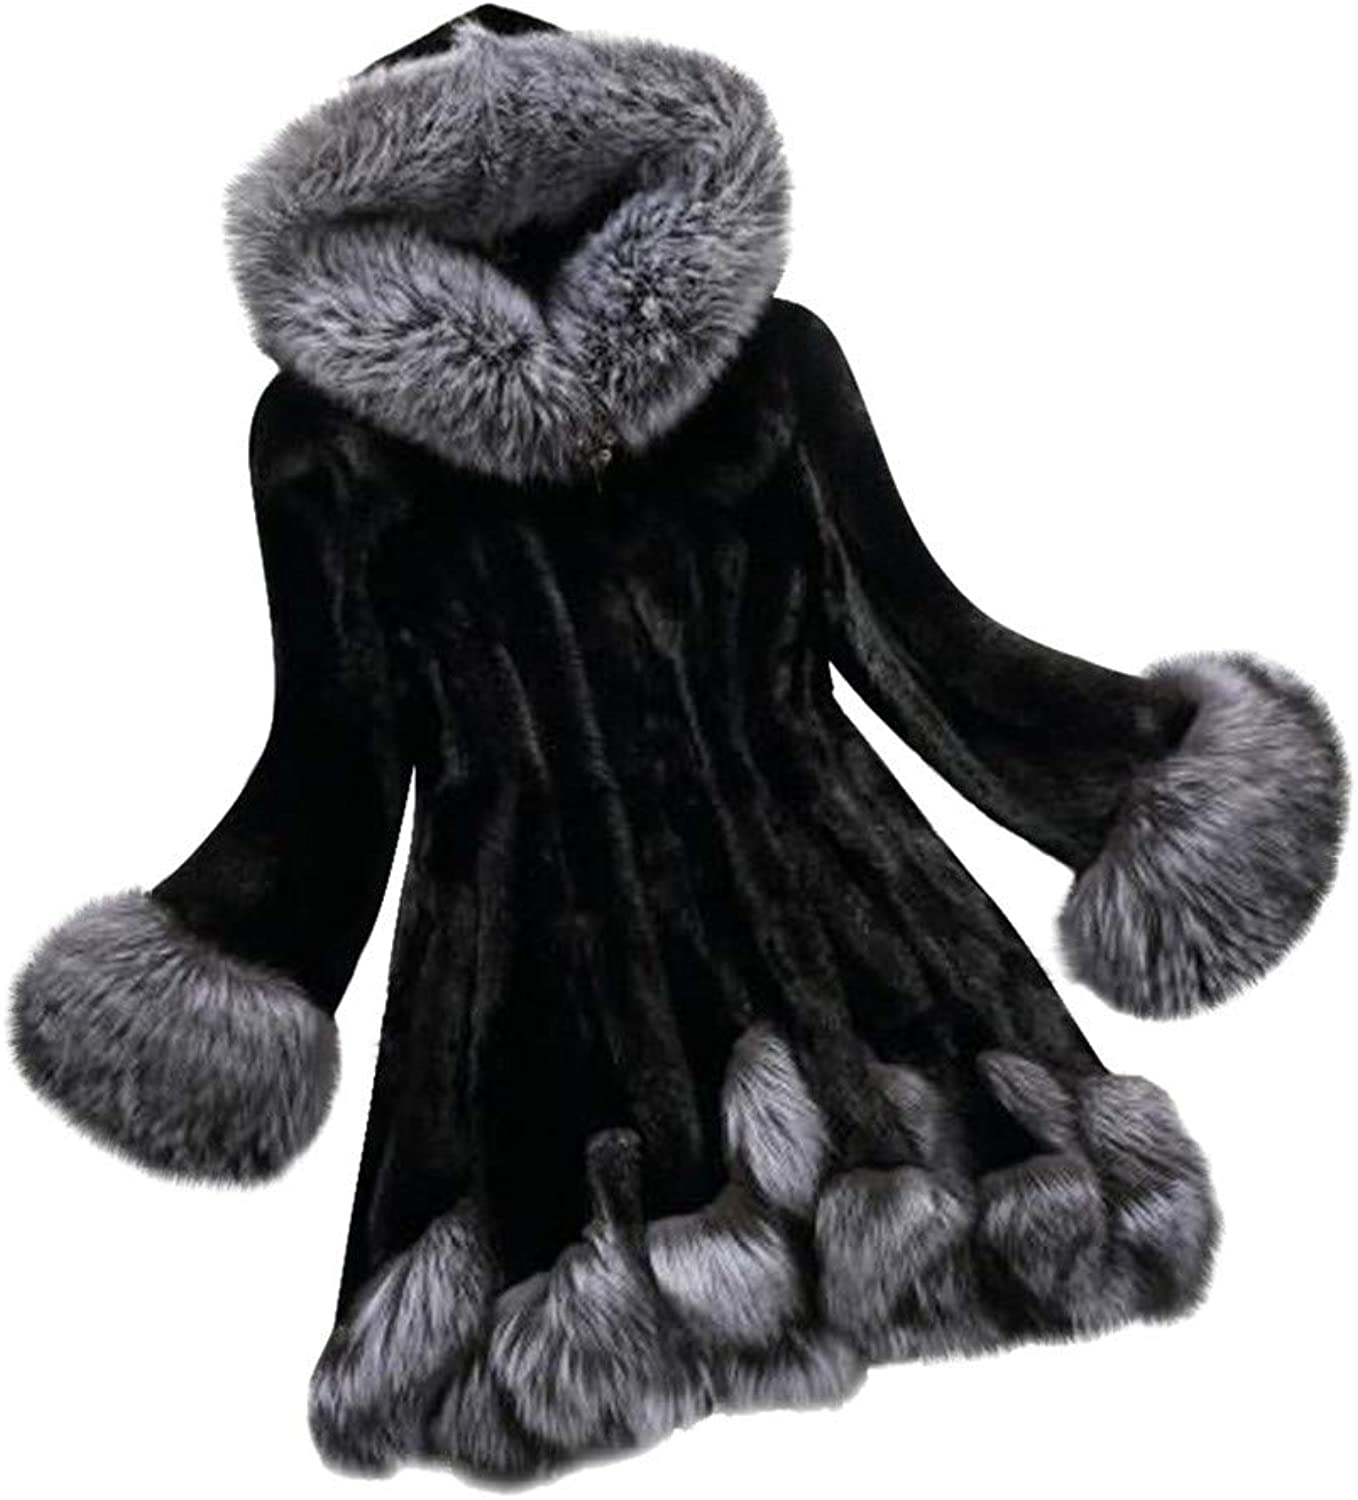 LISTHA Faux Fur Coat Women Hooded Warm Overcoat Winter Thick Jackets Pockets